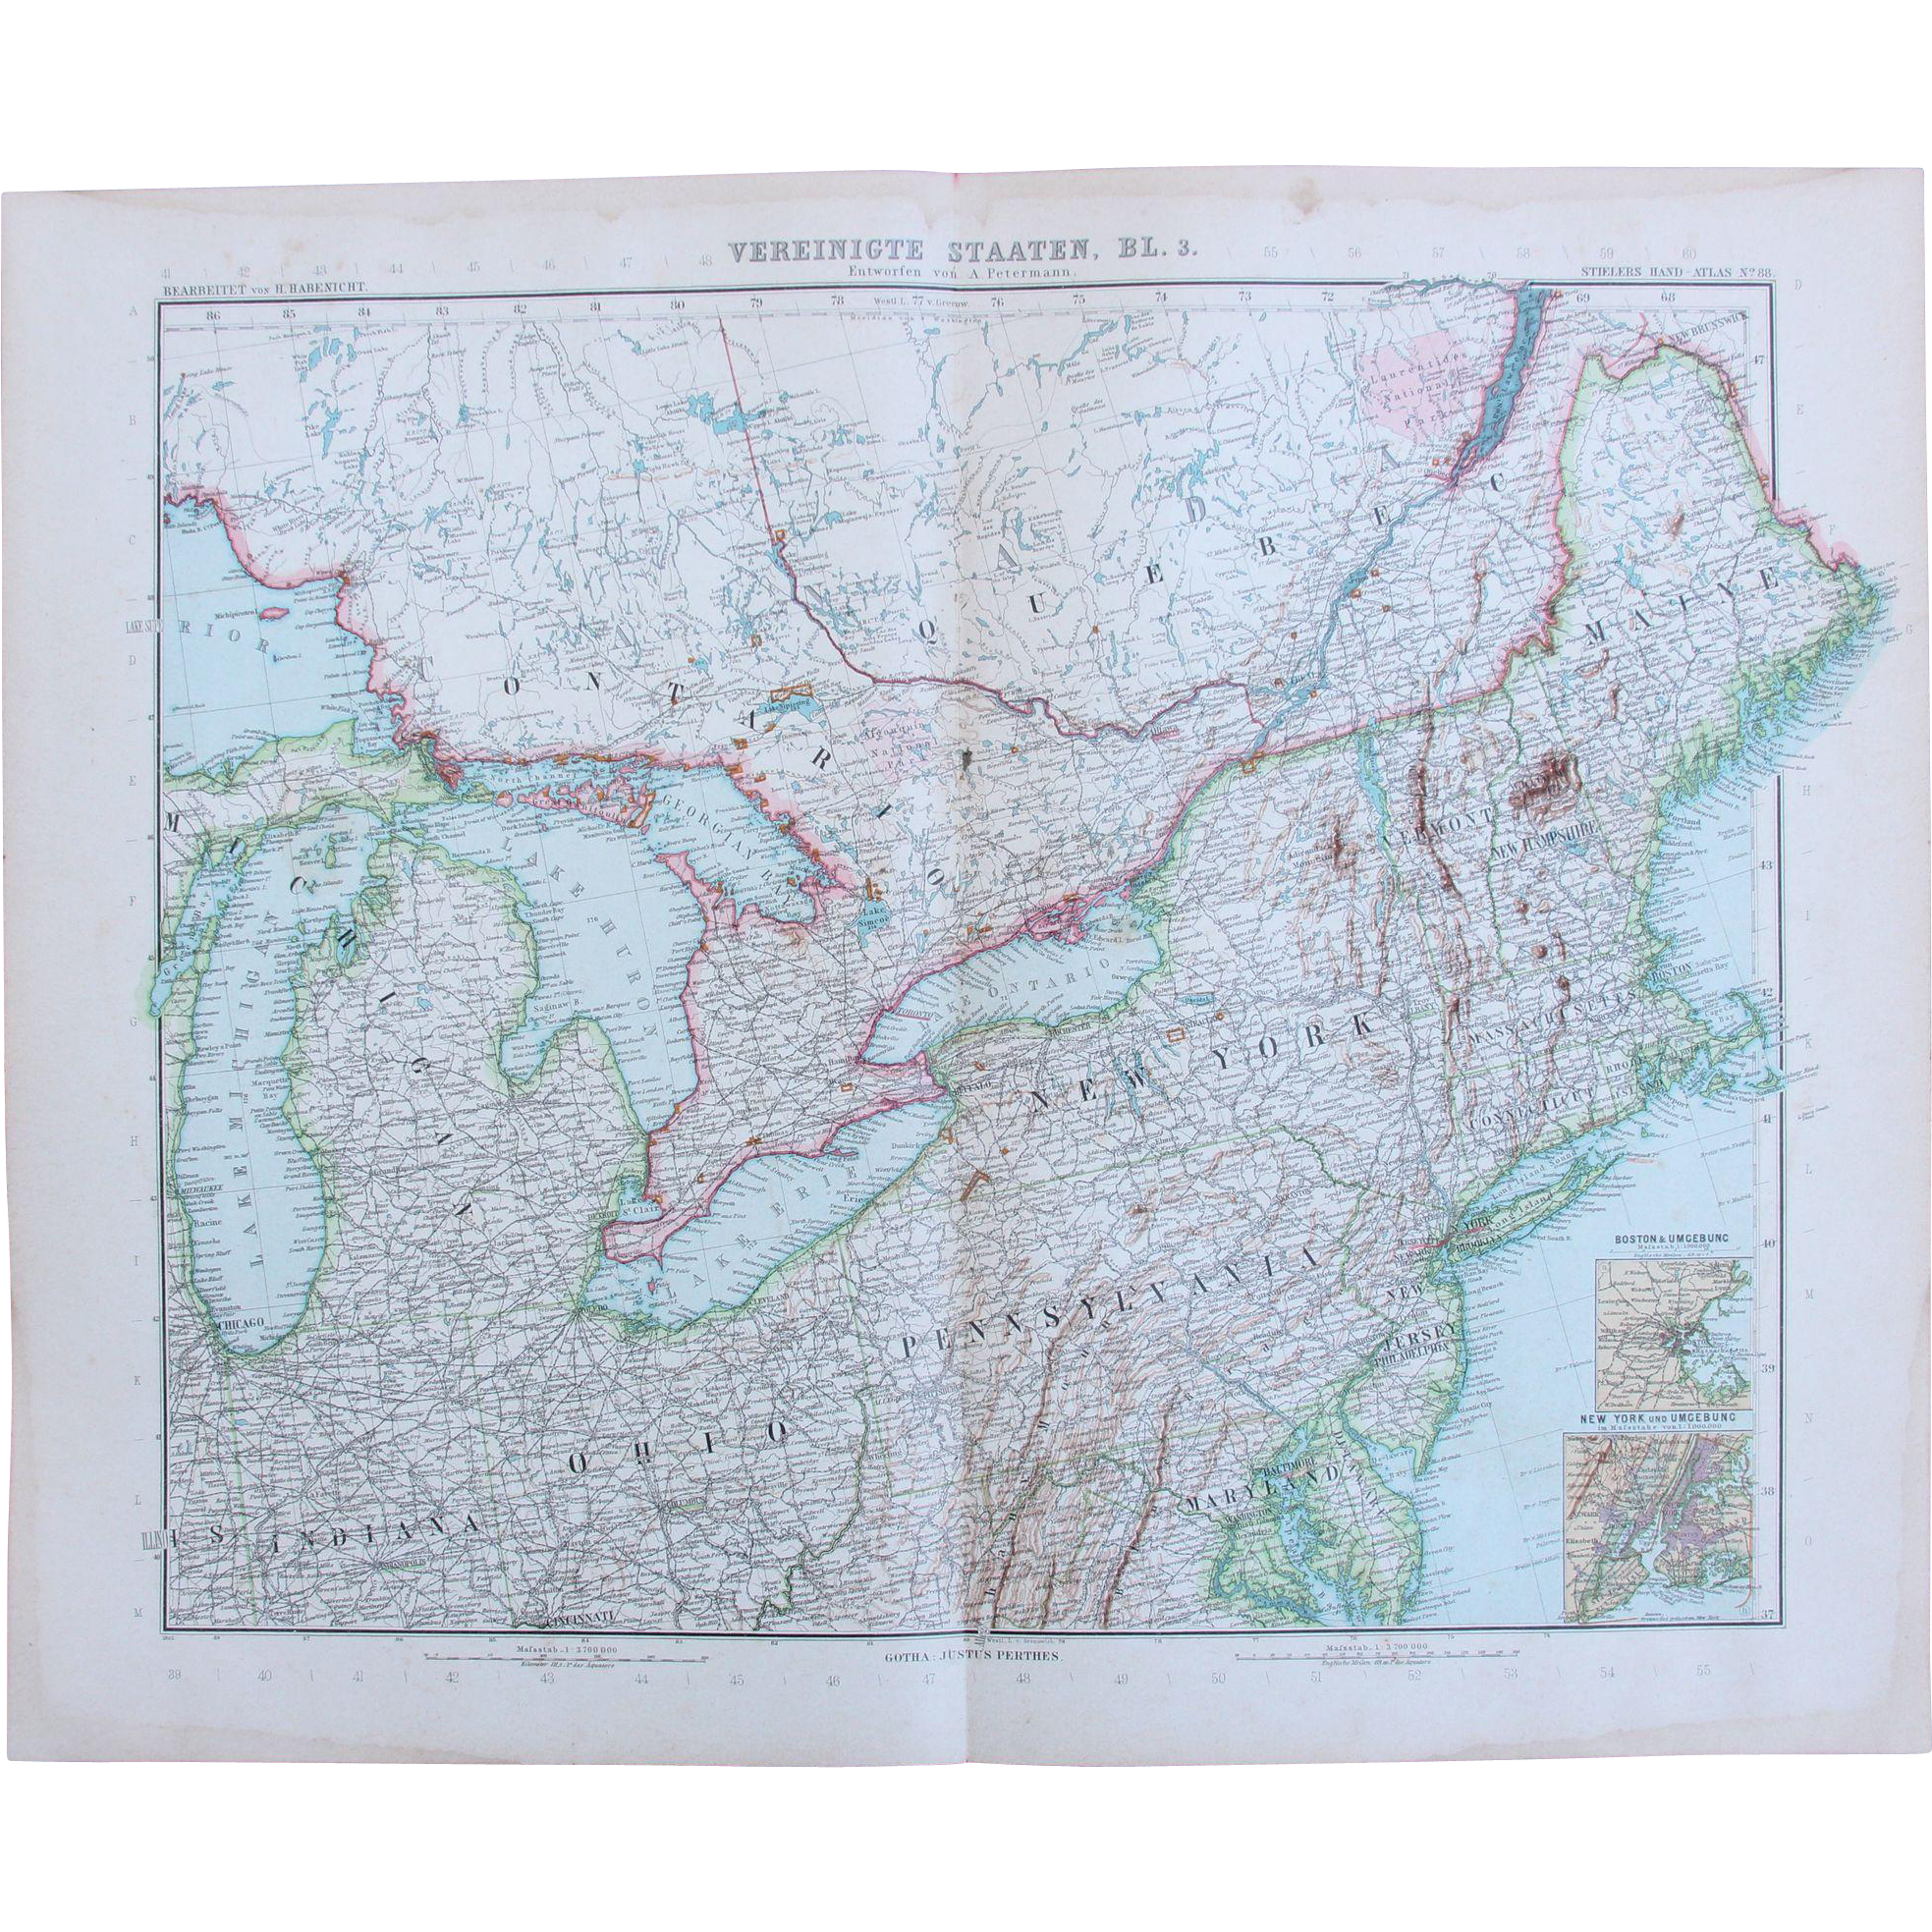 Art Nouveau Map of the North East USA incl New York Boston from